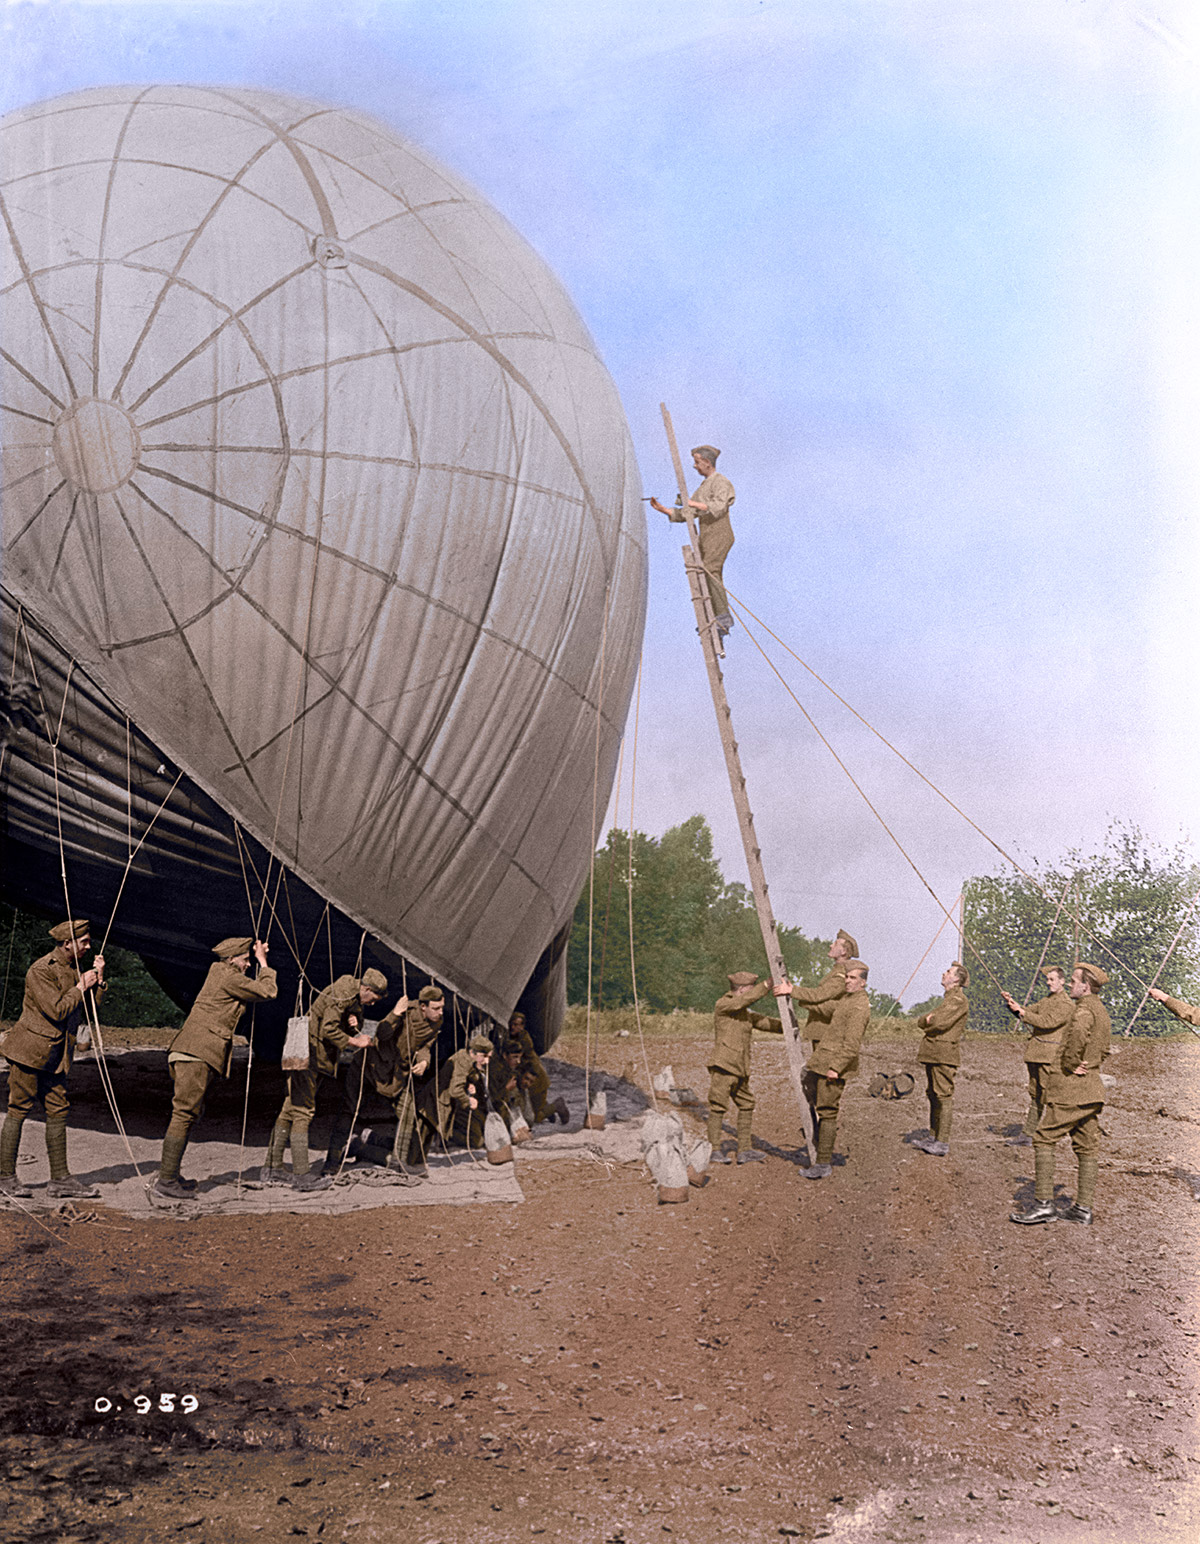 Repairing a kite balloon which was slightly damaged on a gusty day, Oct 1916.